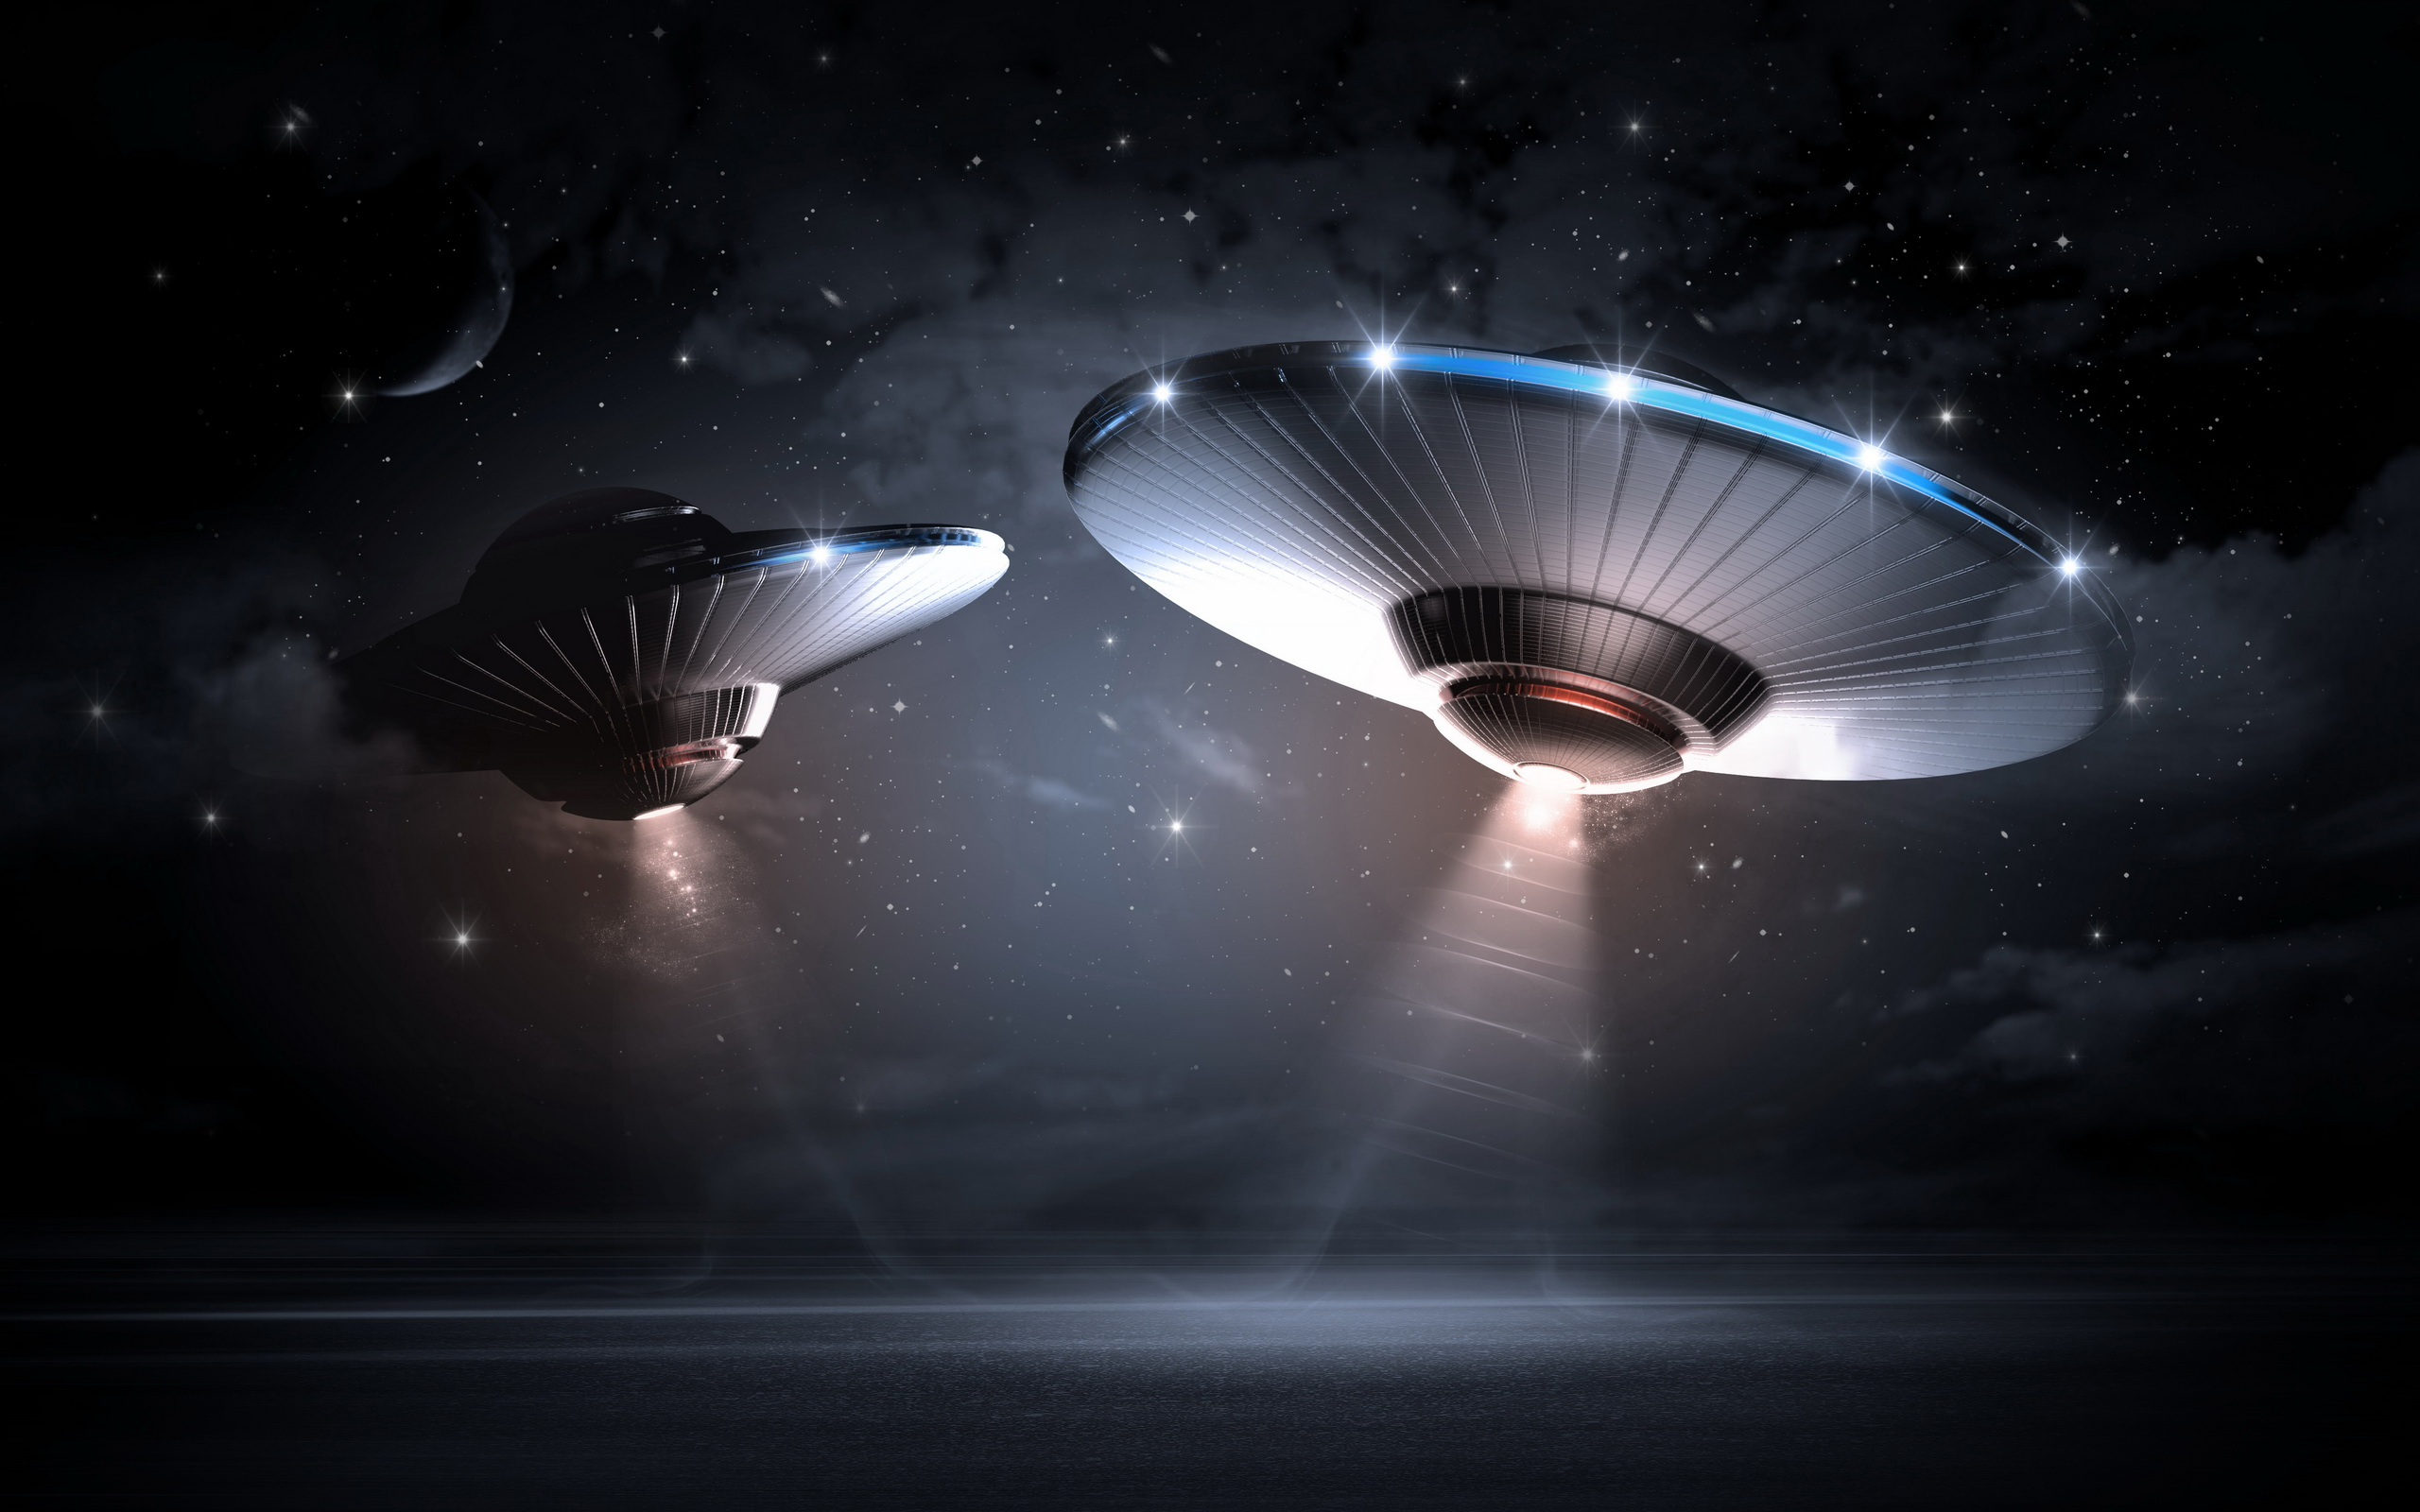 2560x1600 - UFO Wallpapers 3